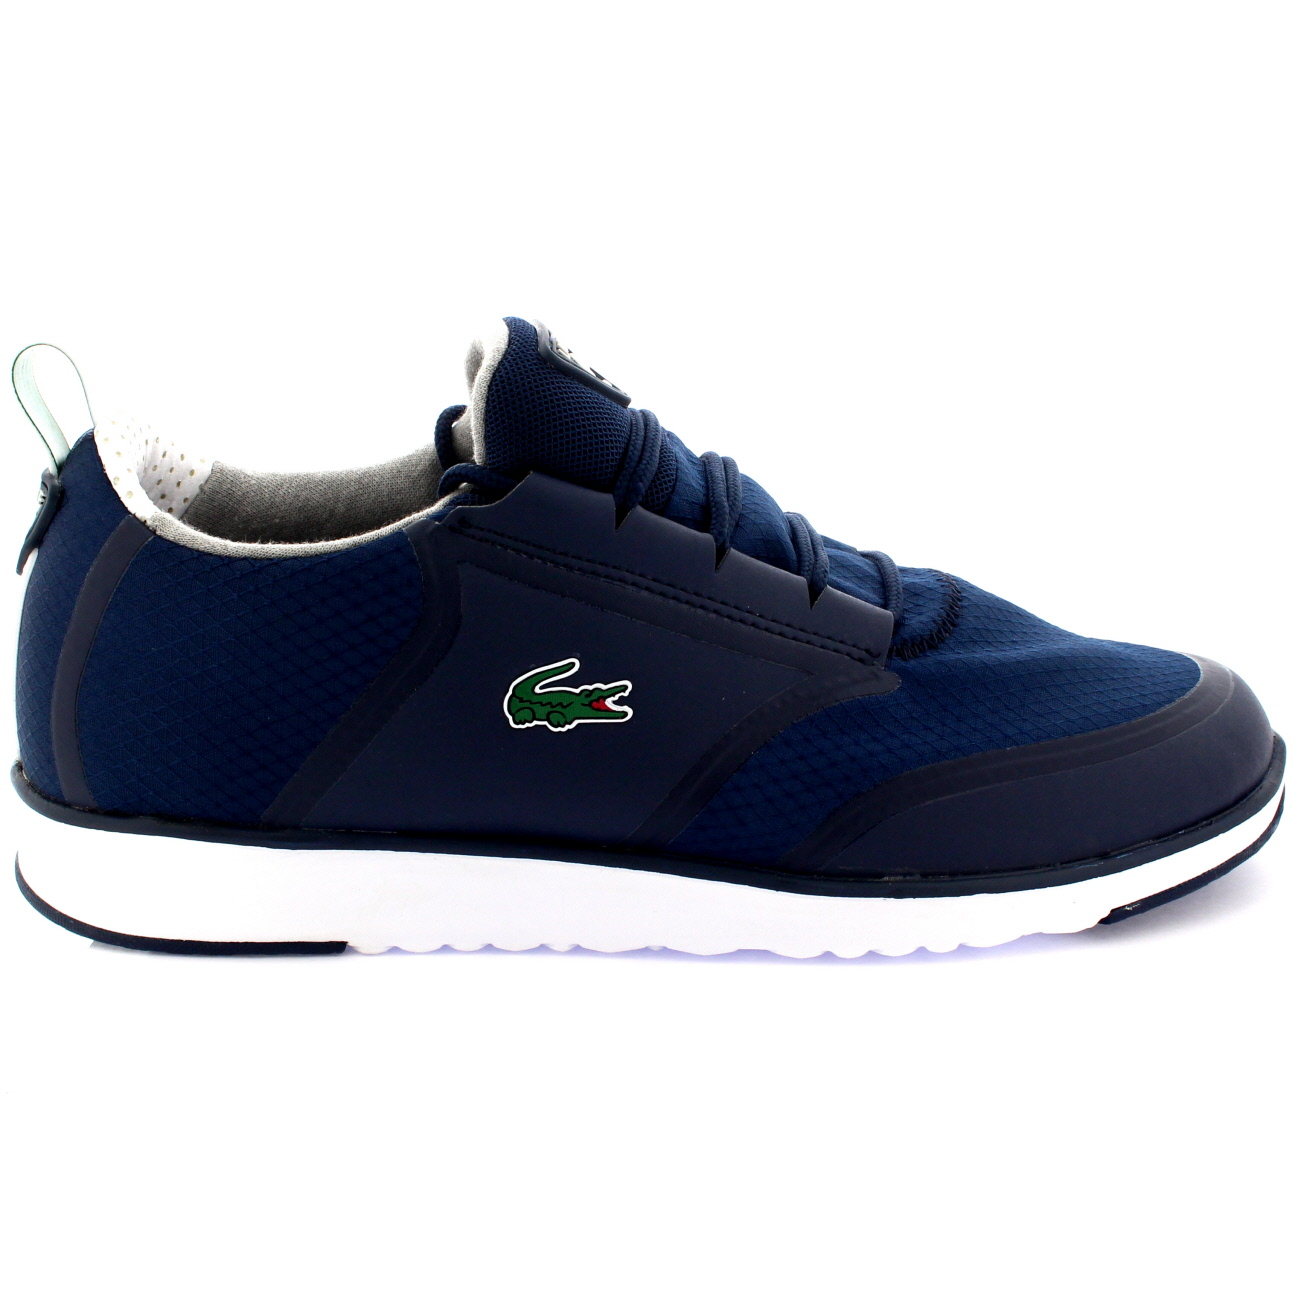 Shoe Sizes Uk Lacoste